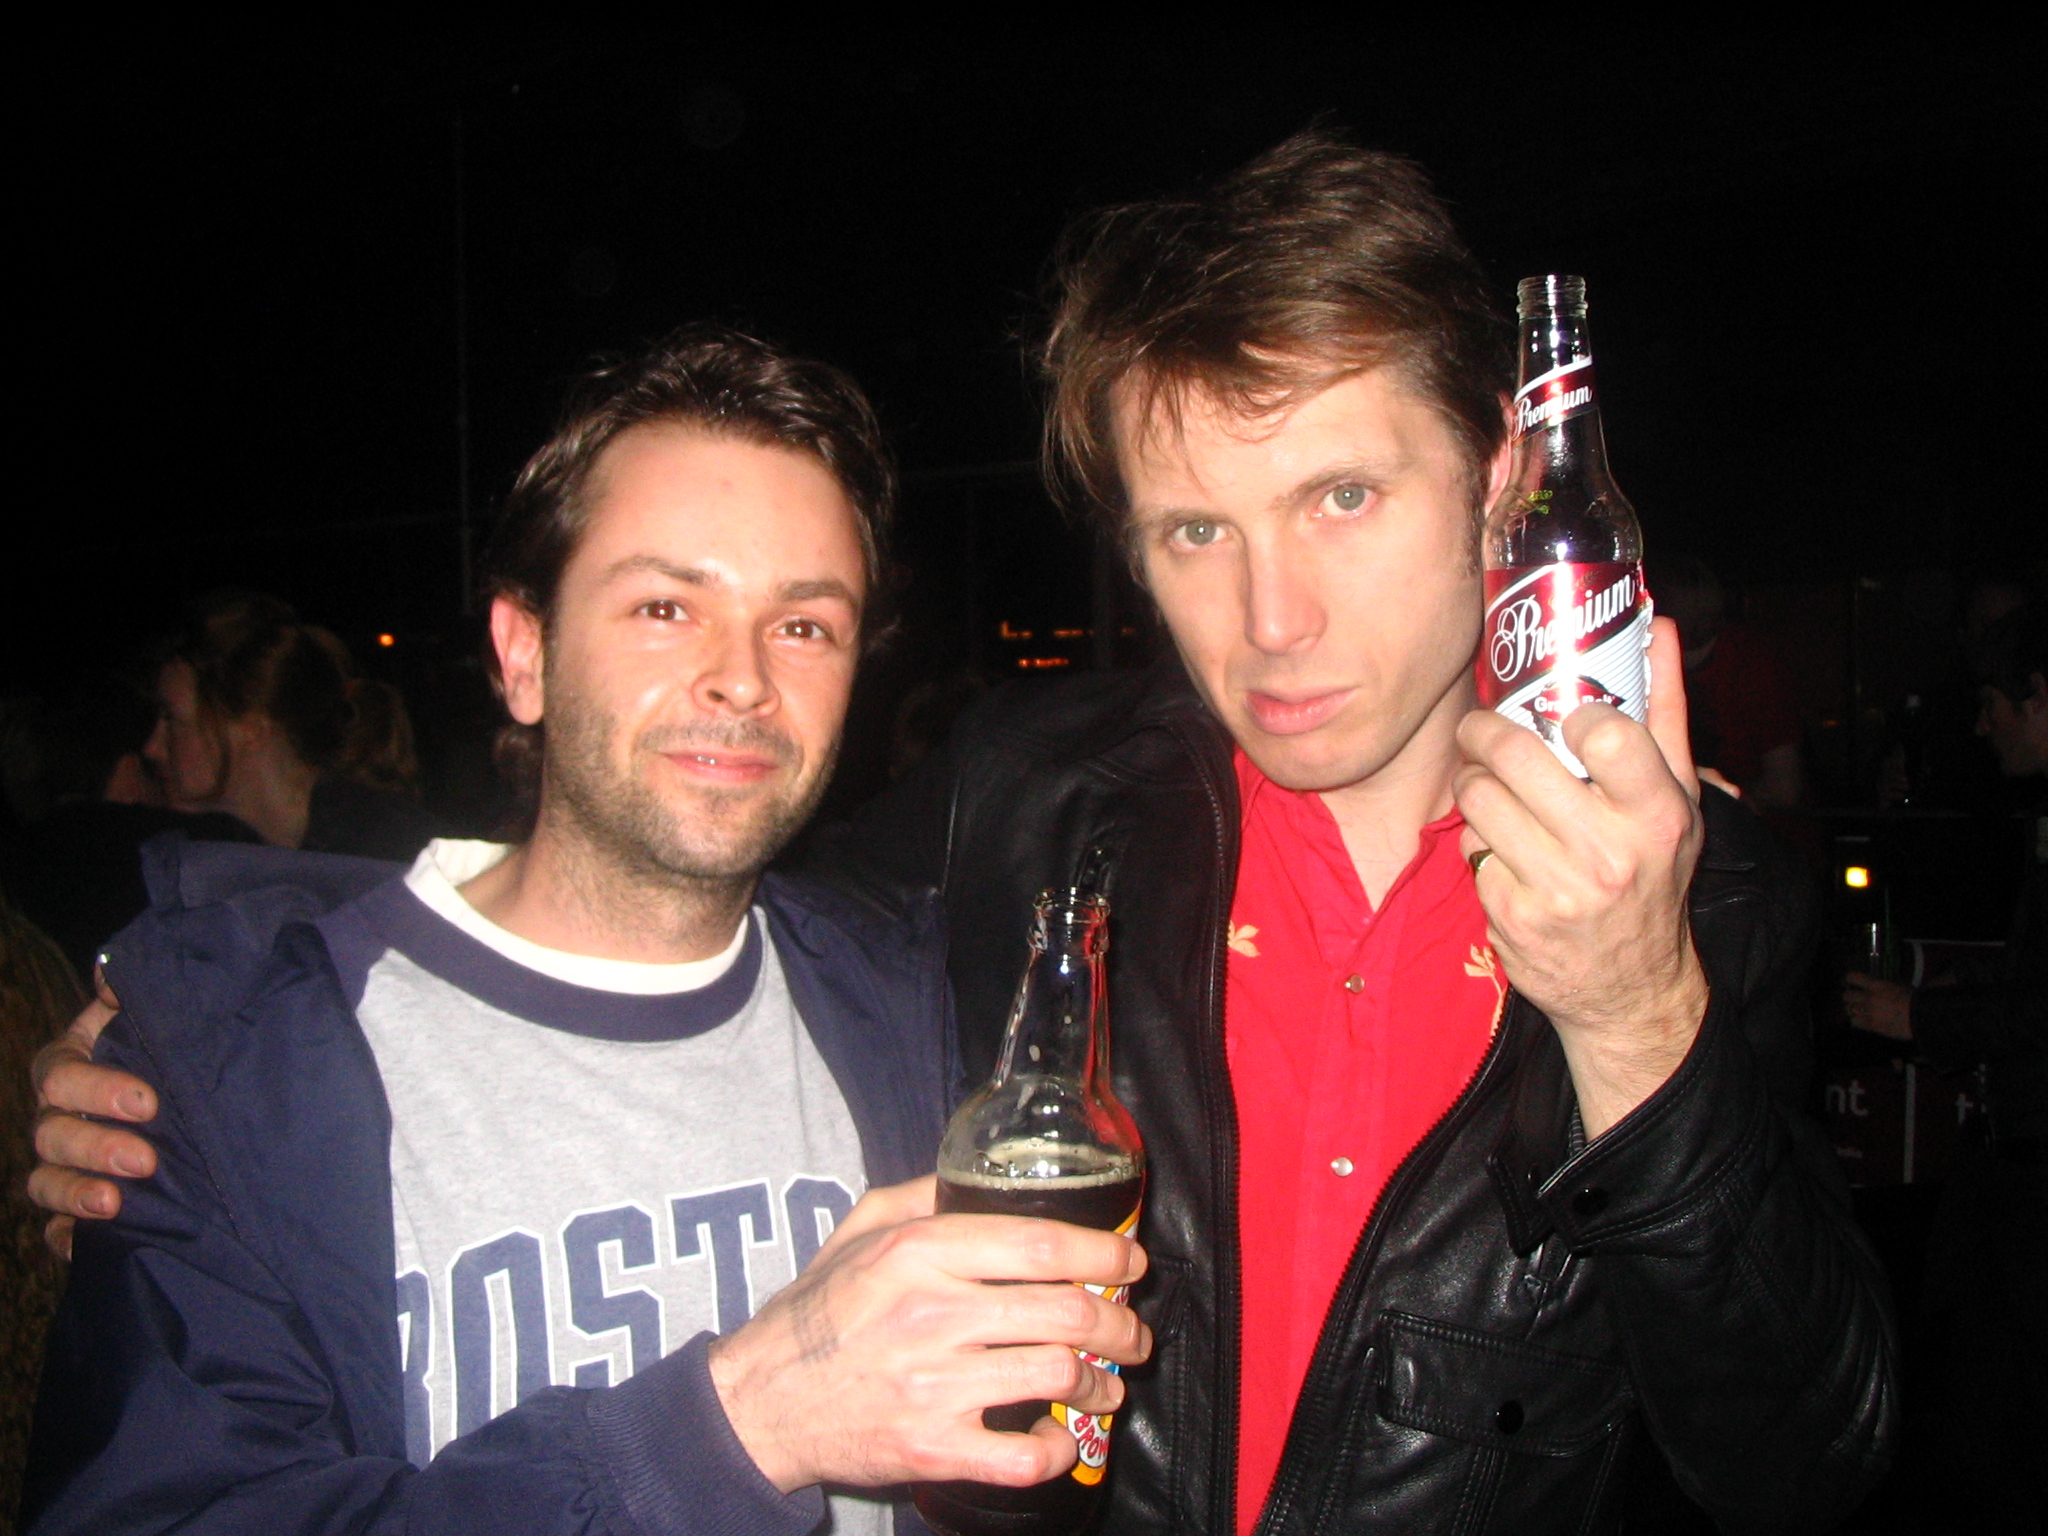 Steve and Alex Kapranos (Franz Ferdinand) during Ladytron live @ First Avenue, 4/22/06, Minneapolis, MN.